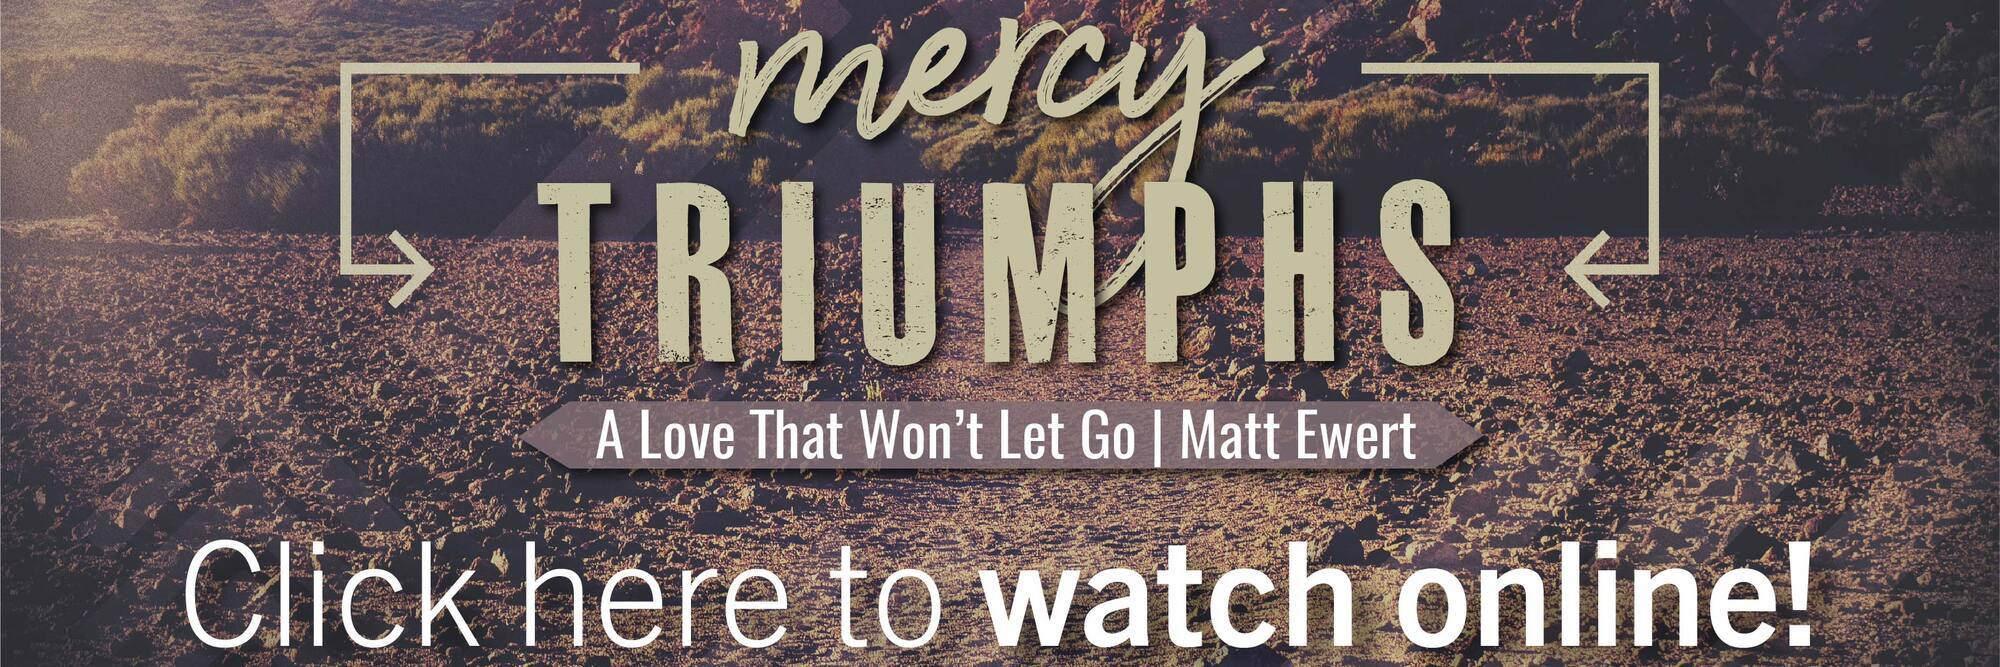 Mercy Triumphs: A Love That Won't Let Go